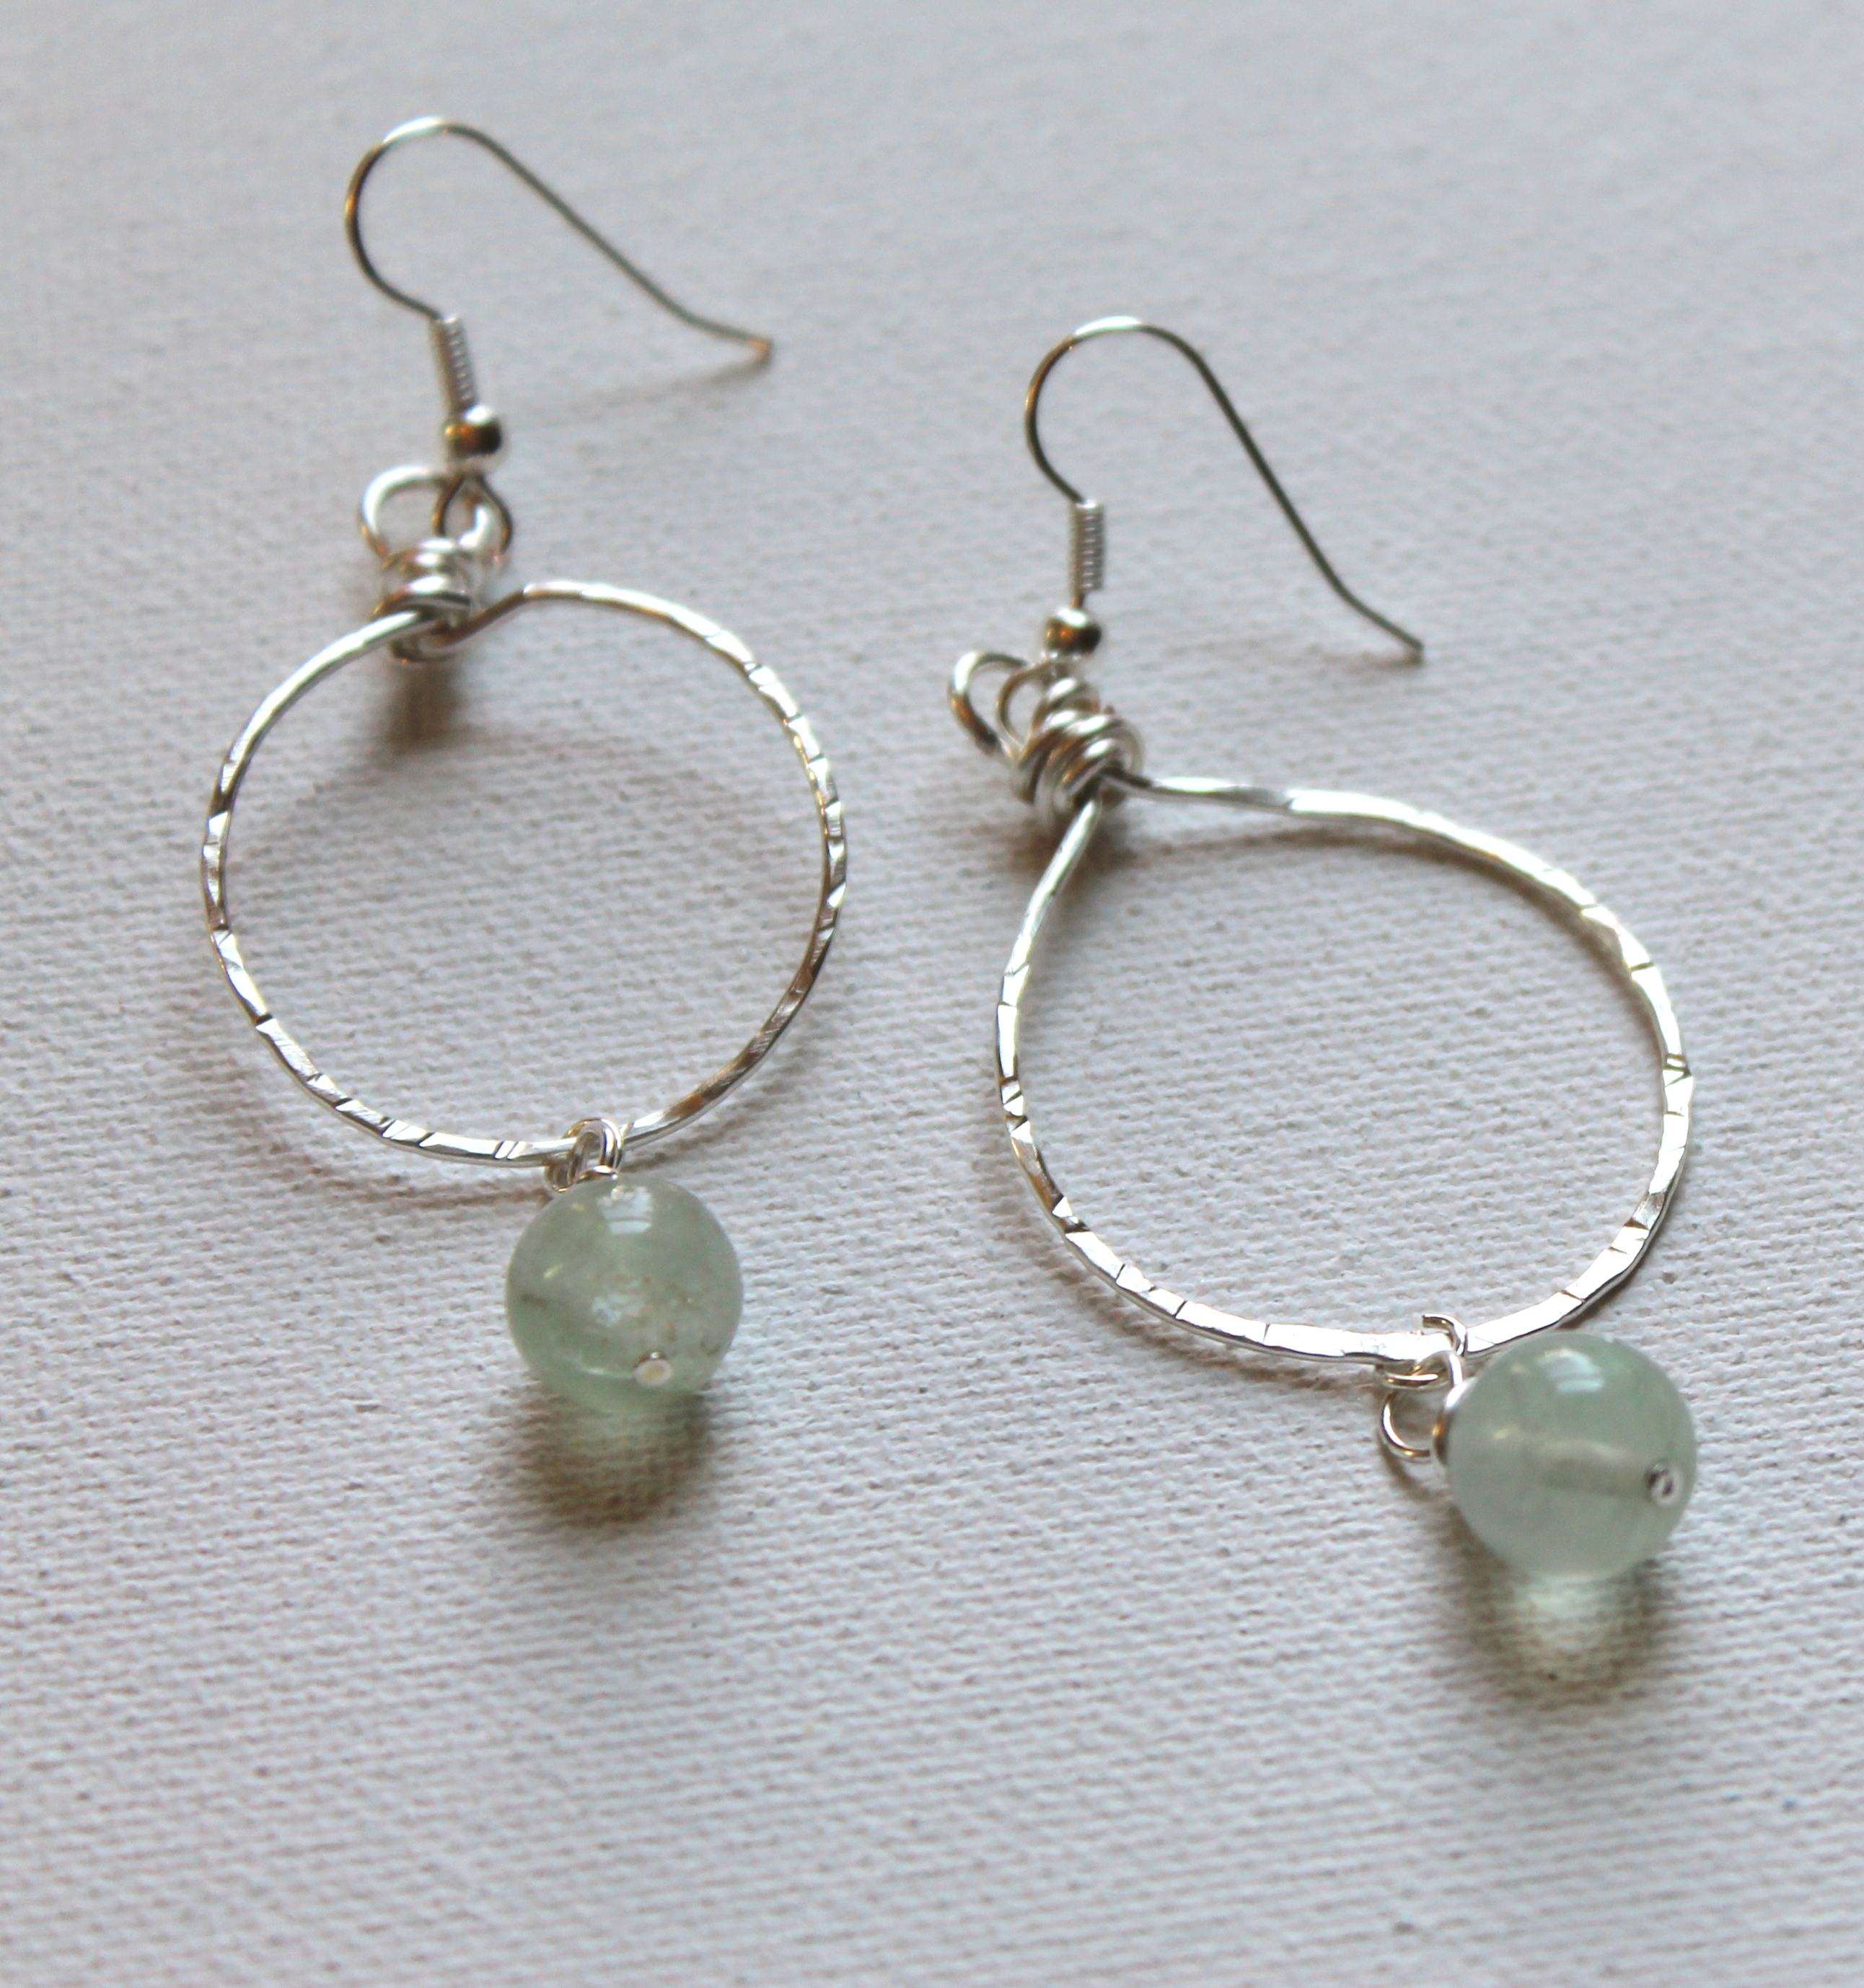 shapes   Emerging Creatively Jewelry Tutorials